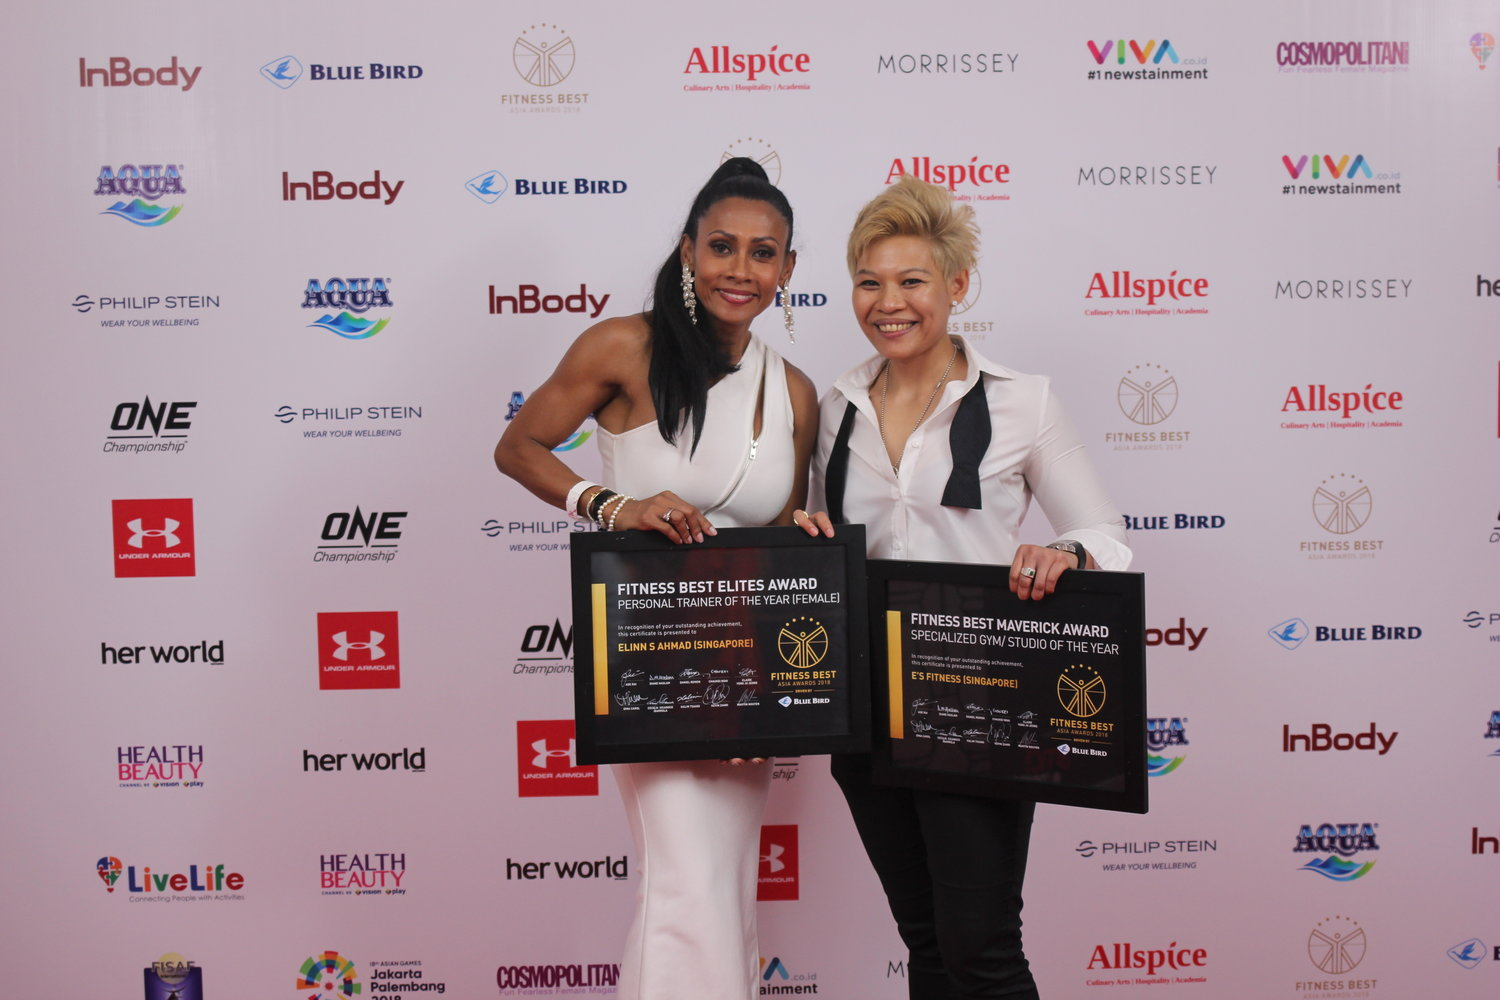 , Female Personal Trainer Elinn S Ahmad, Along With Her Gym E's FITNESS and win Two Awards Overnight in the 2018 Fitness Best Asia Awards – Click to find out more!